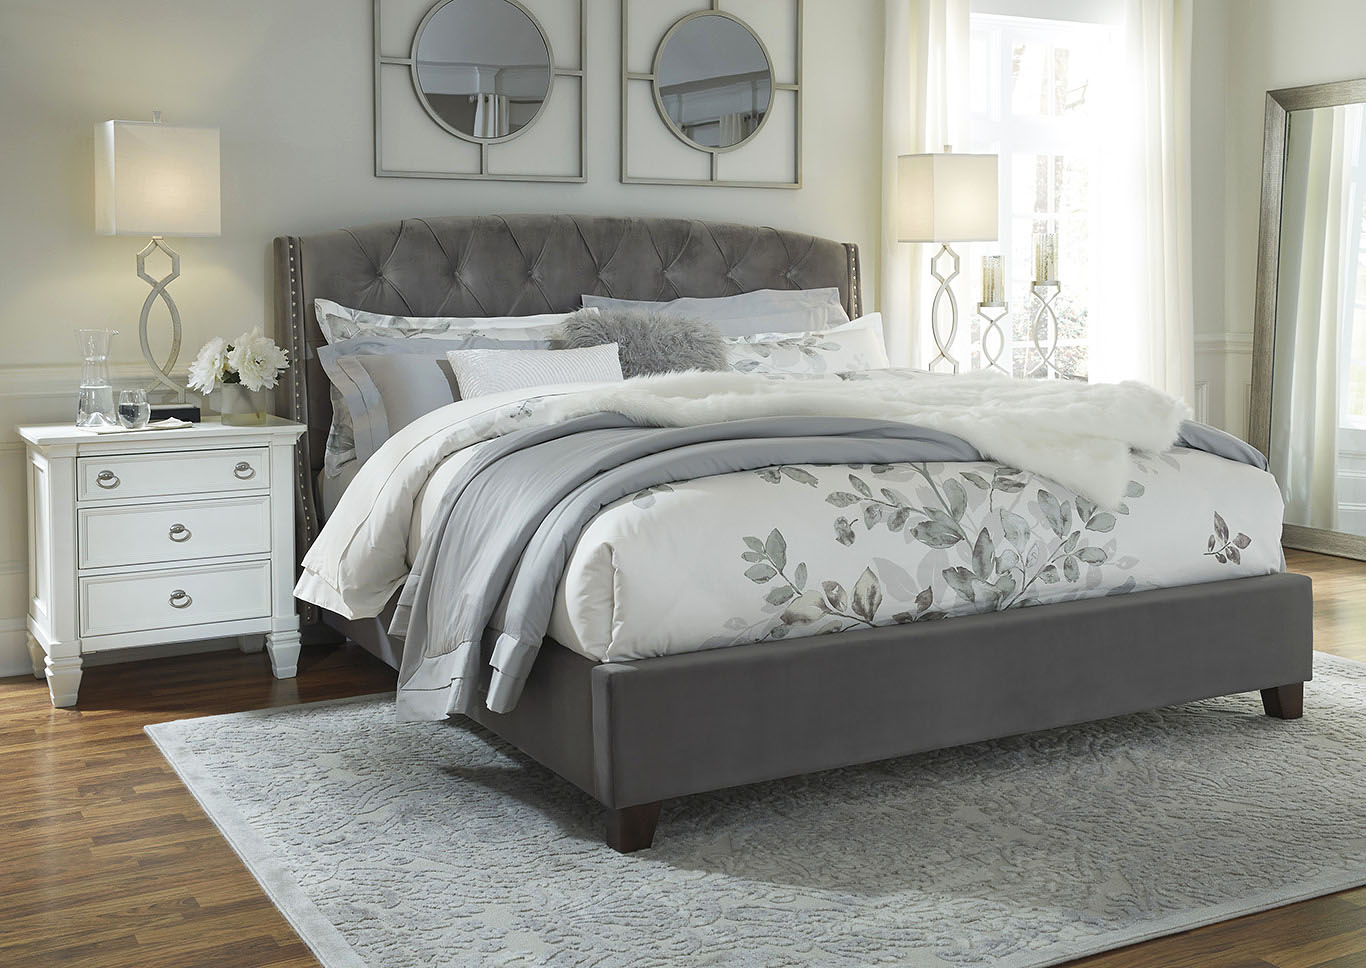 Kasidon Multi King Upholstered Bed,Signature Design by Ashley